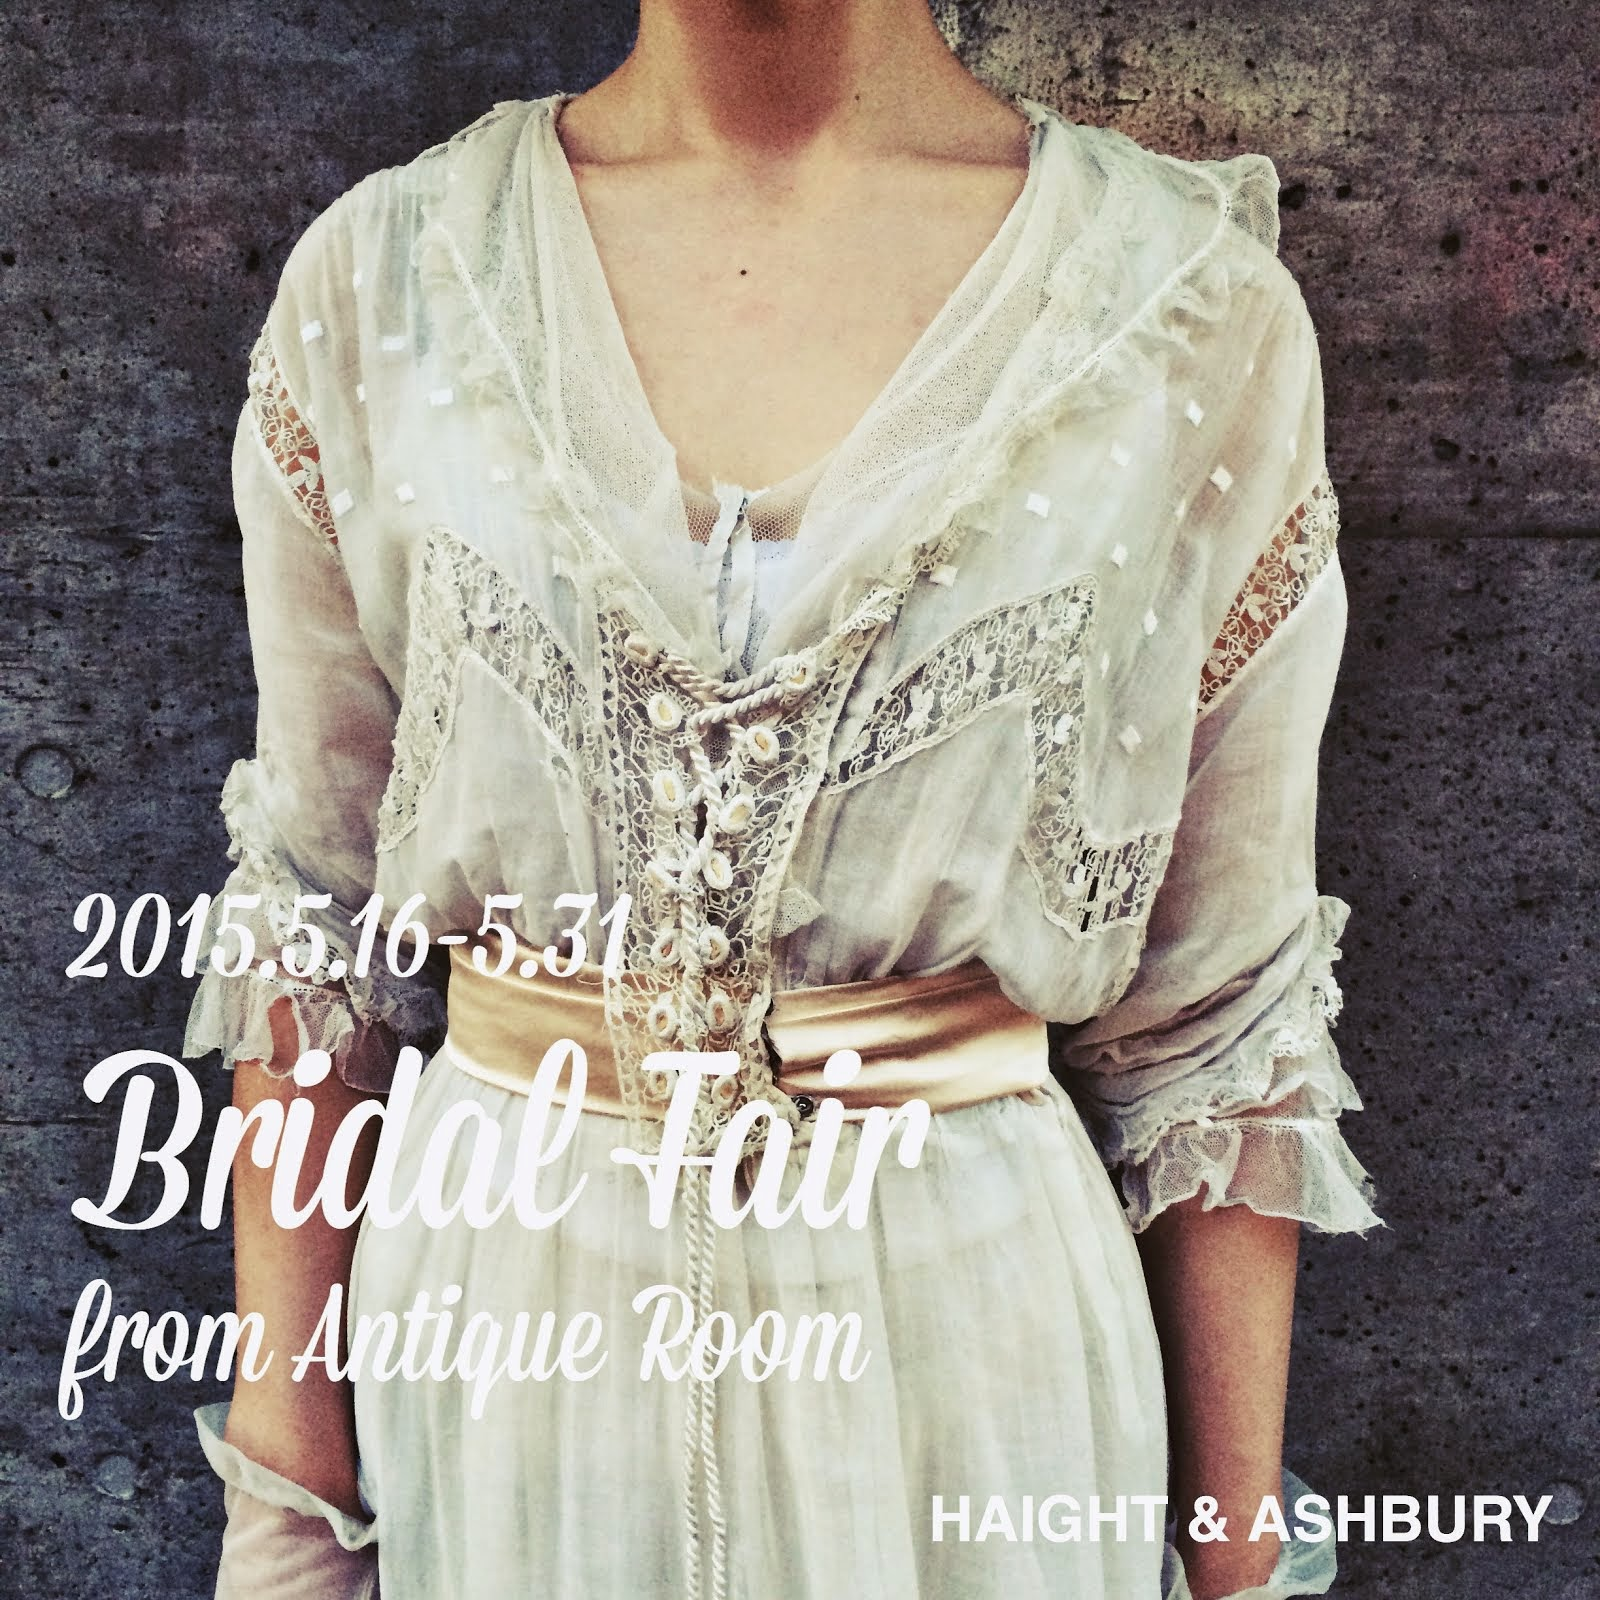 Bridal Fair 5/16~5/30 from Antique Room